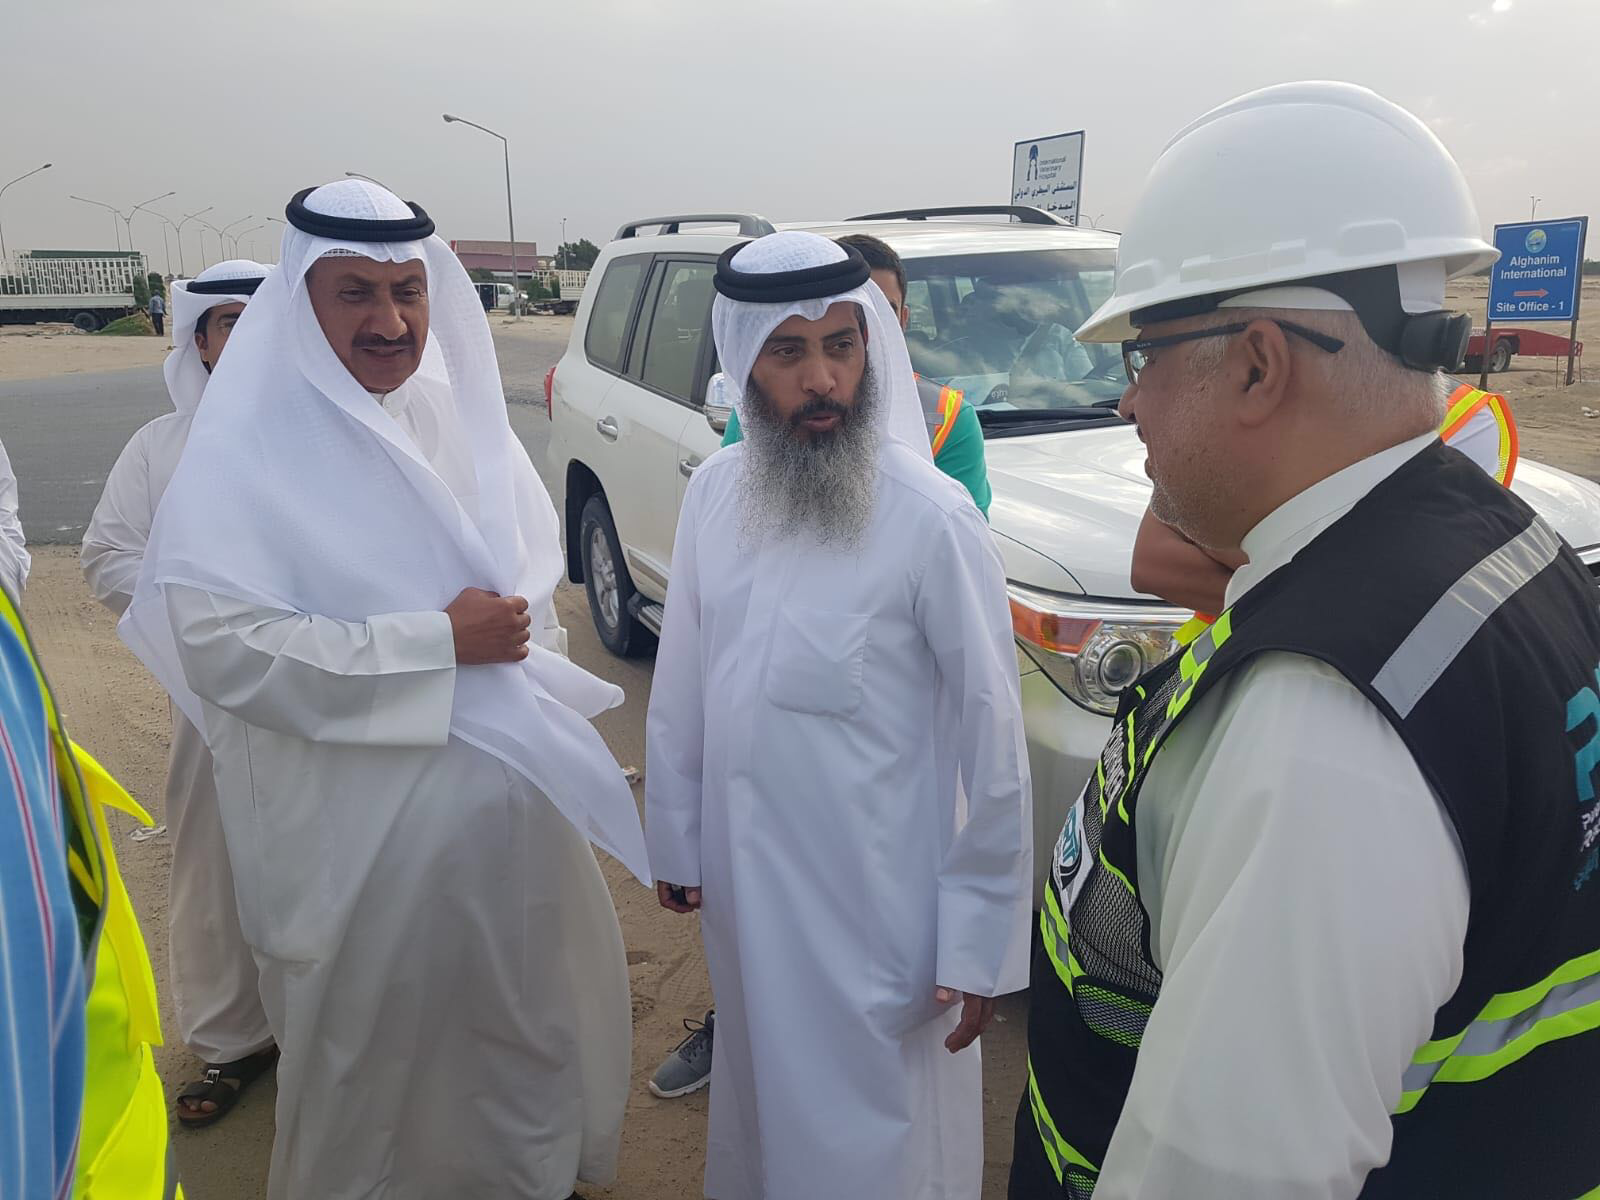 KUNA : Road projects in Kuwait practical application of Vision 2035